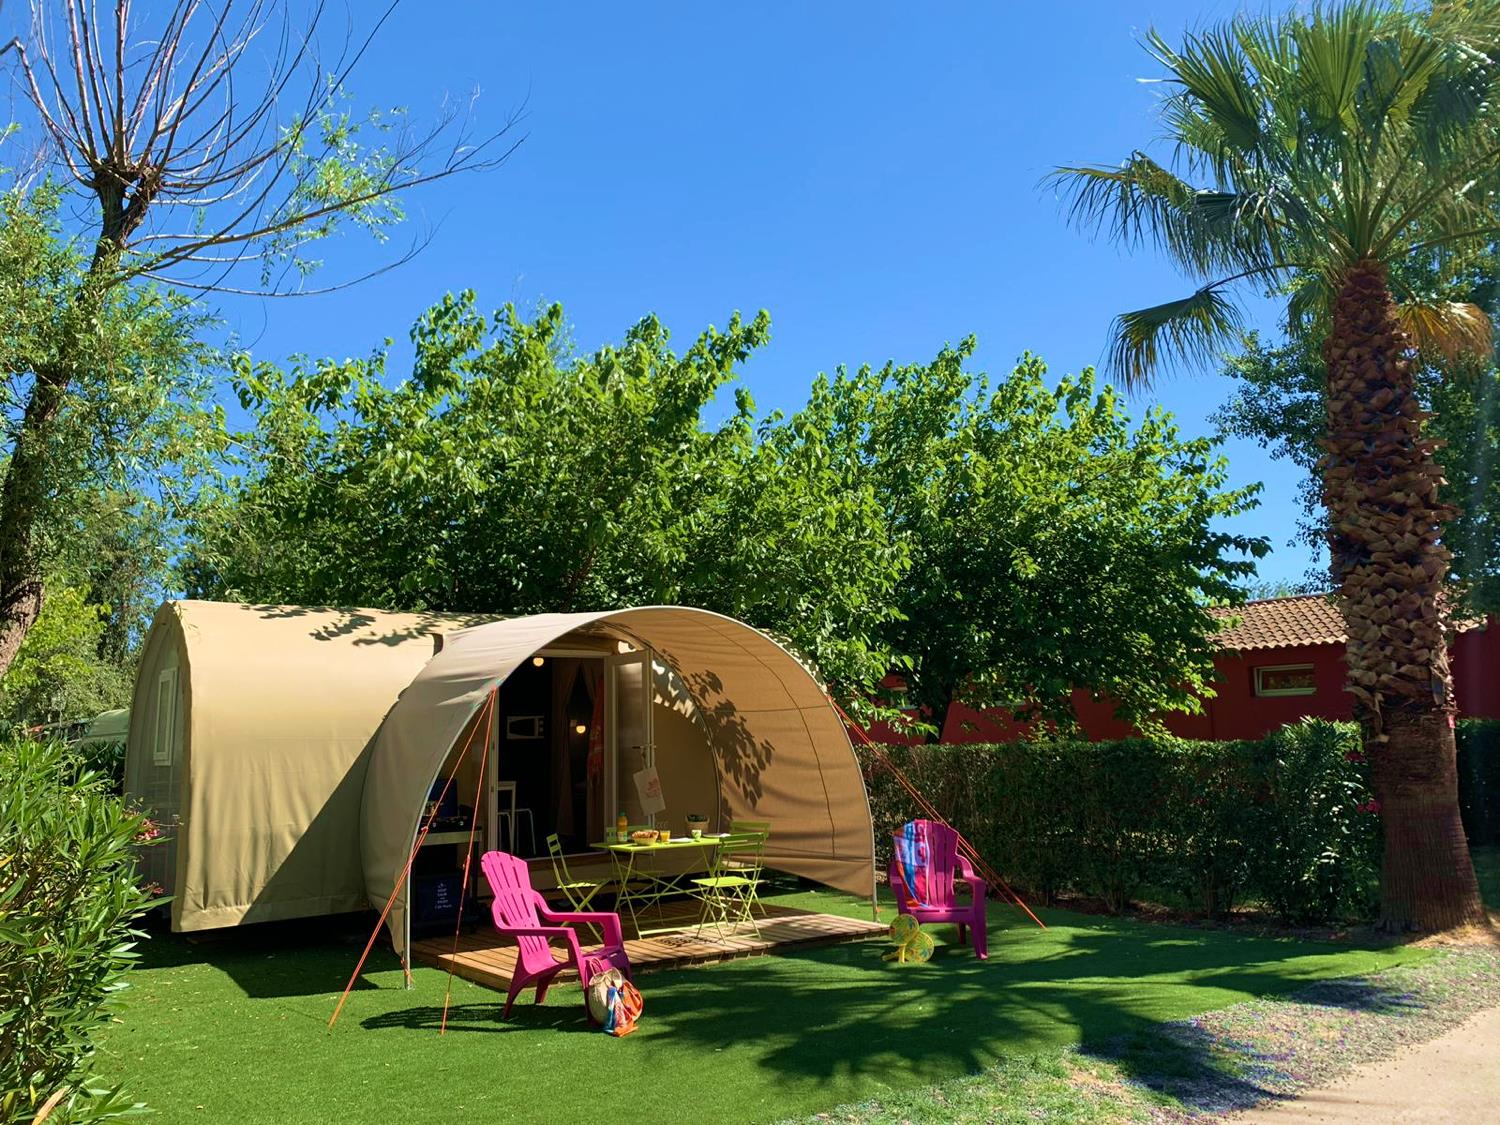 Location - Coco Sweet, Insolite - Samedi - 1/2 Chambres - Camping L'Air Marin